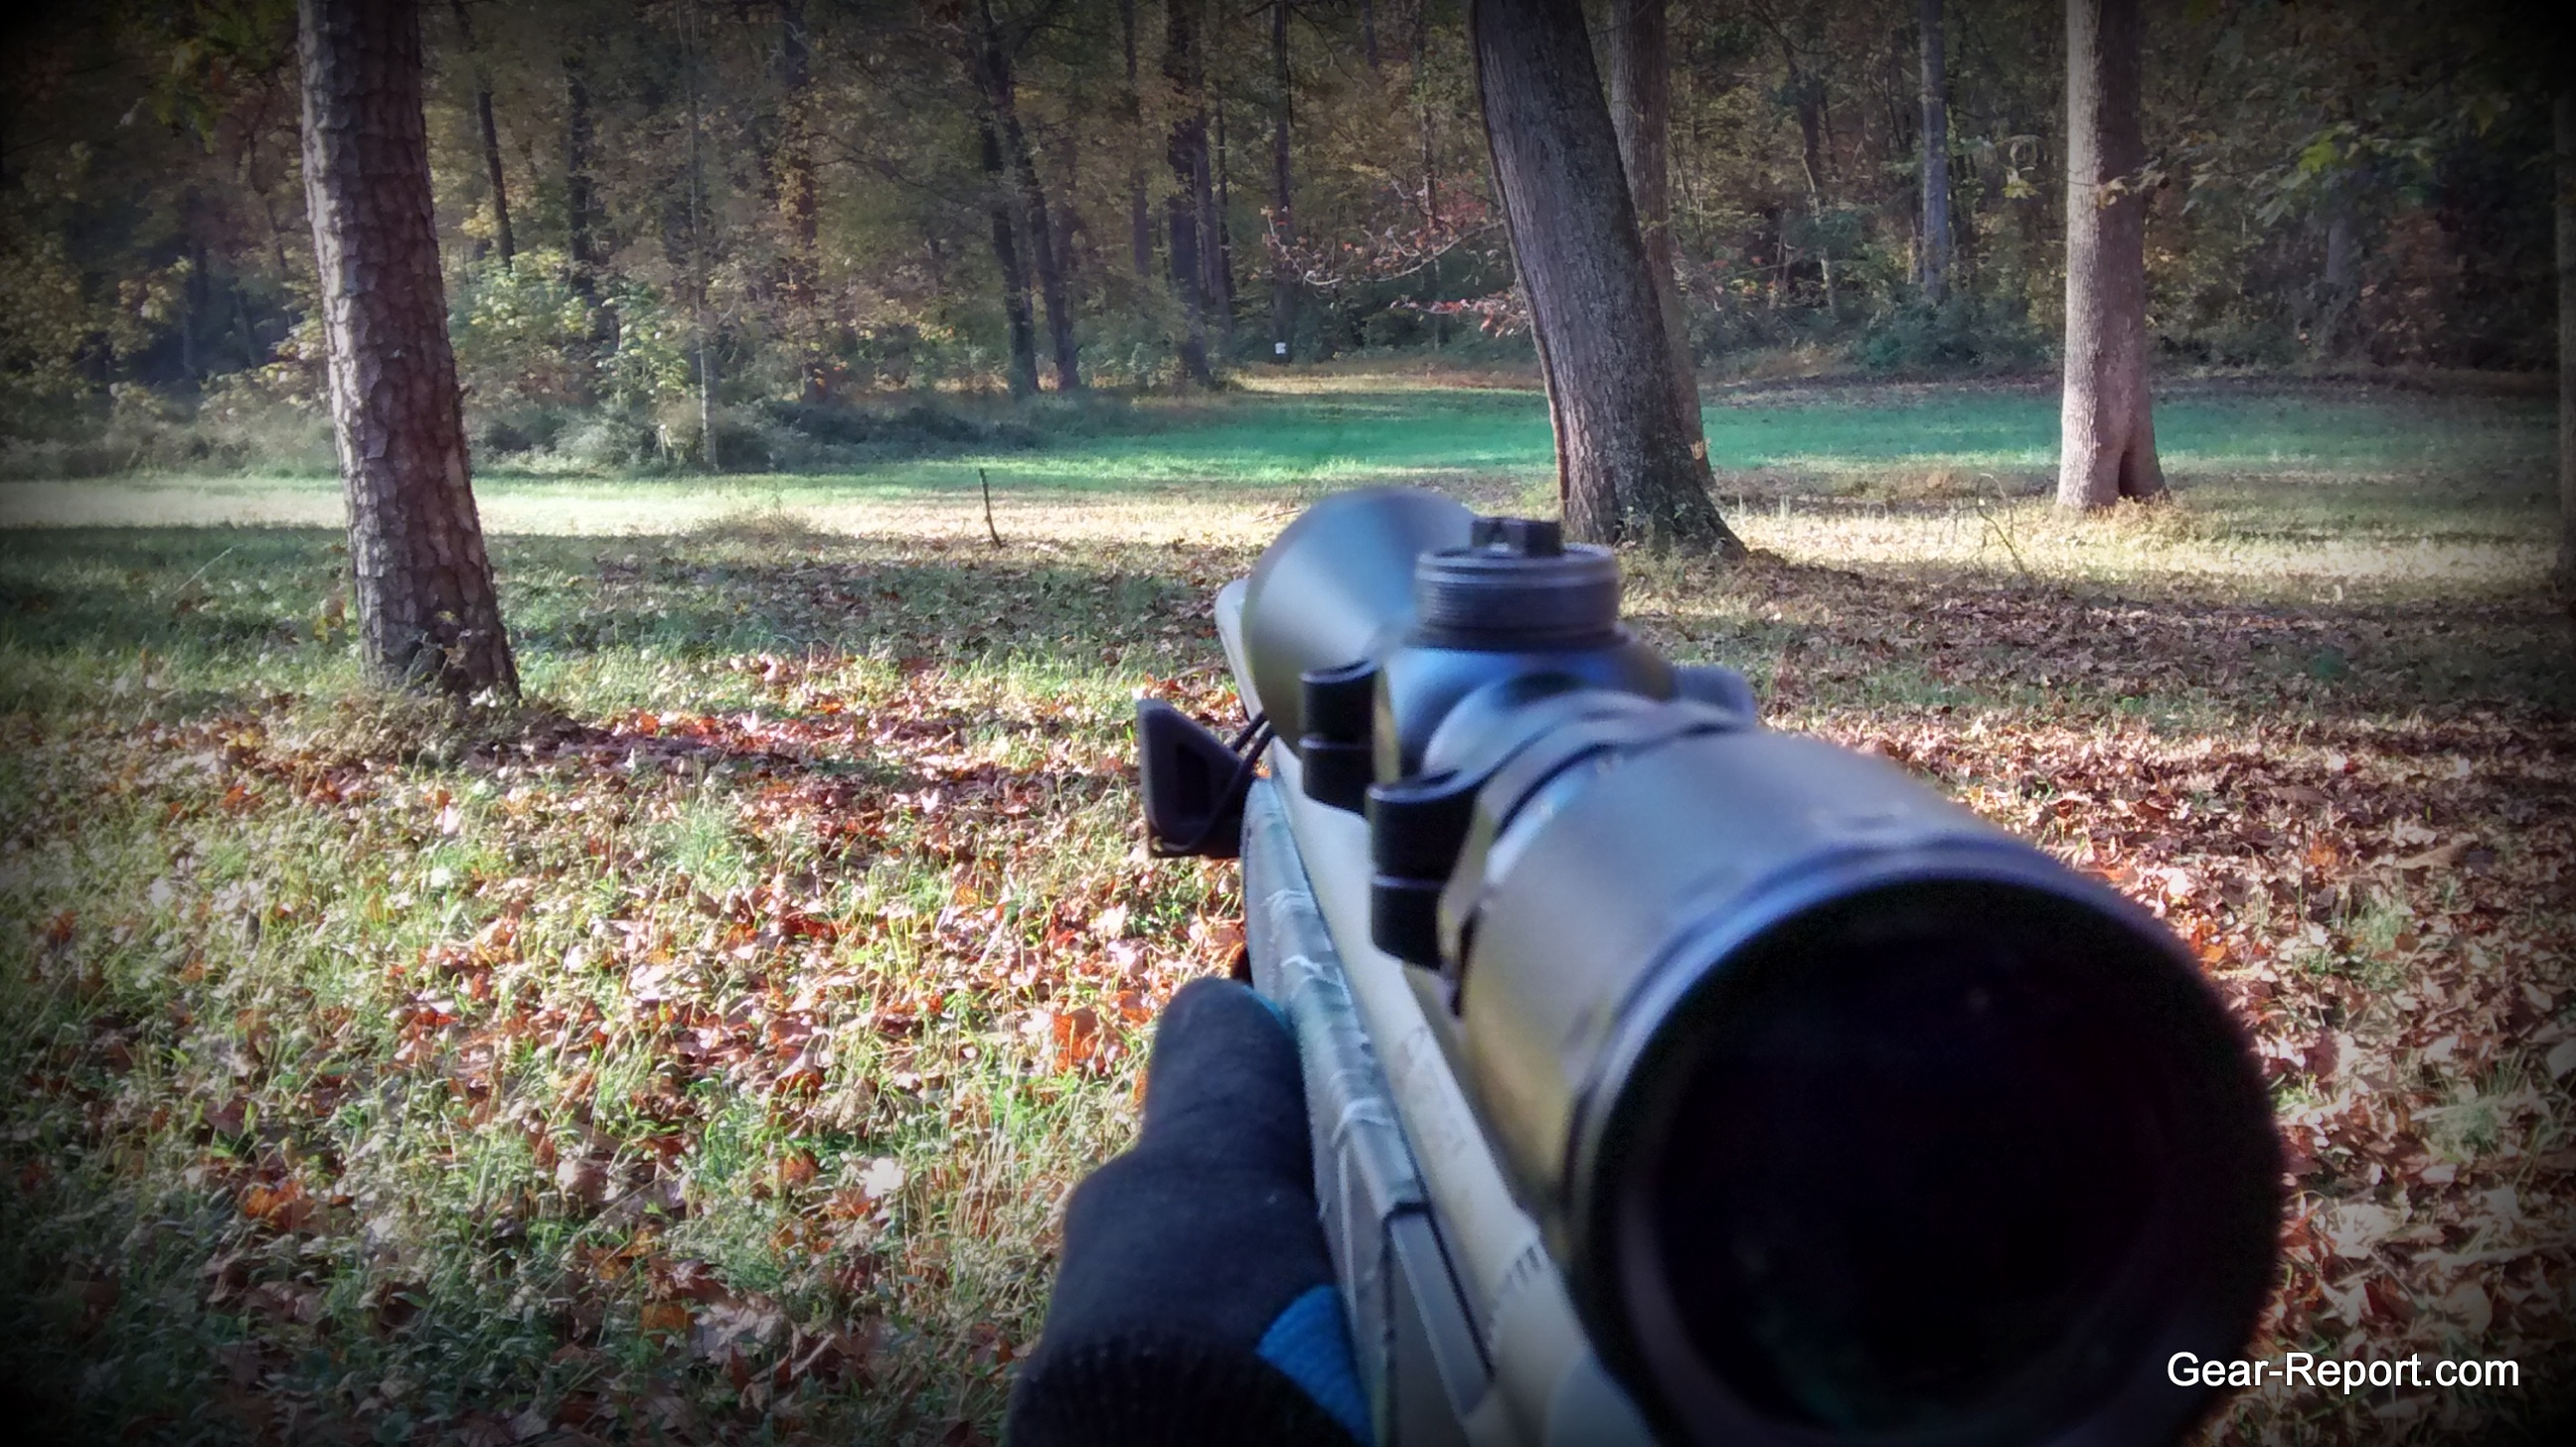 Tips for Hunting With a Black Powder Muzzle Loader Rifle